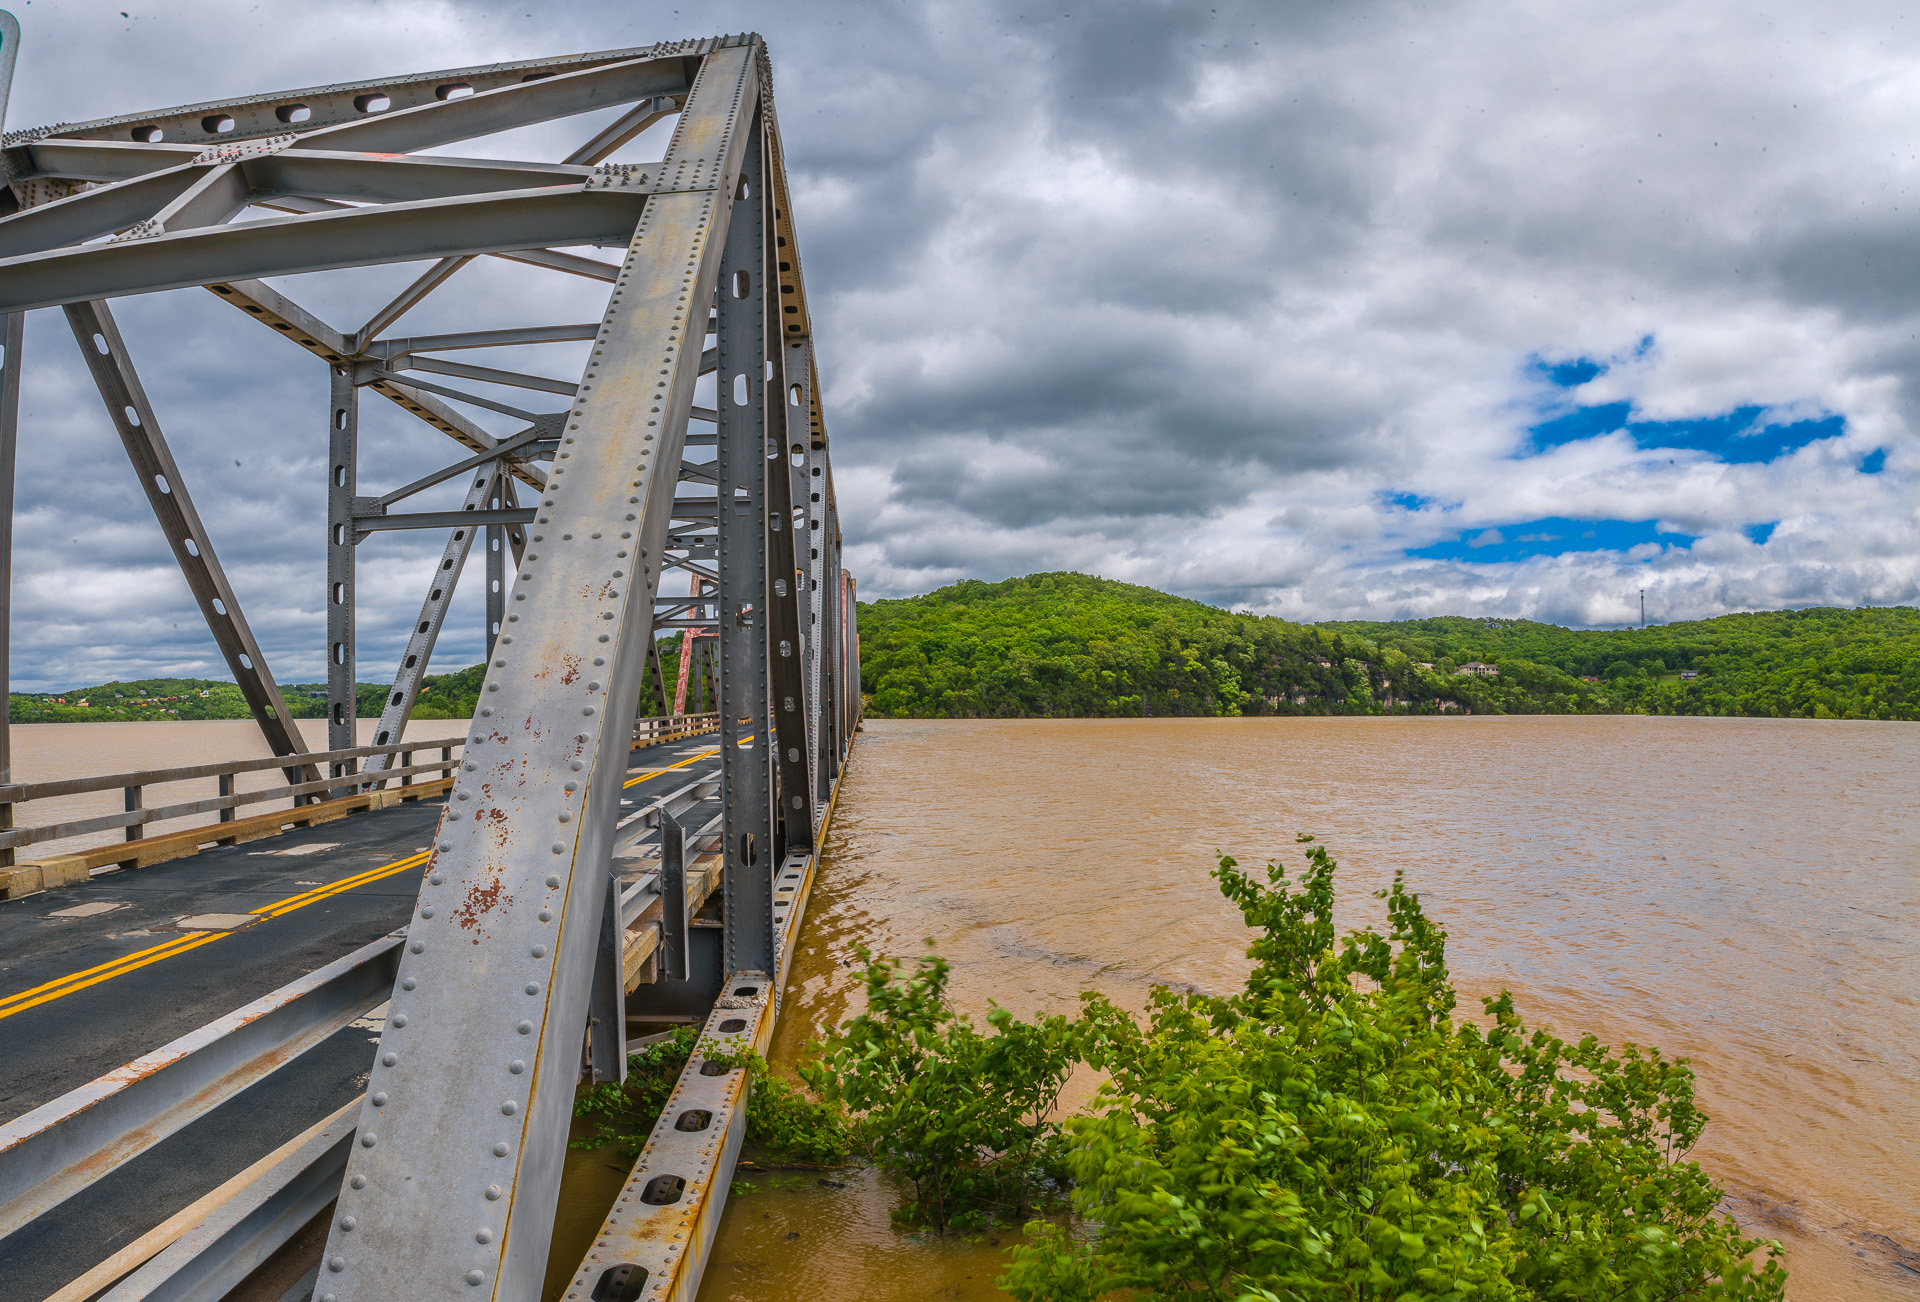 Water overtaking a Bridge located on Table Rock lake Picture by Austin Metcalf